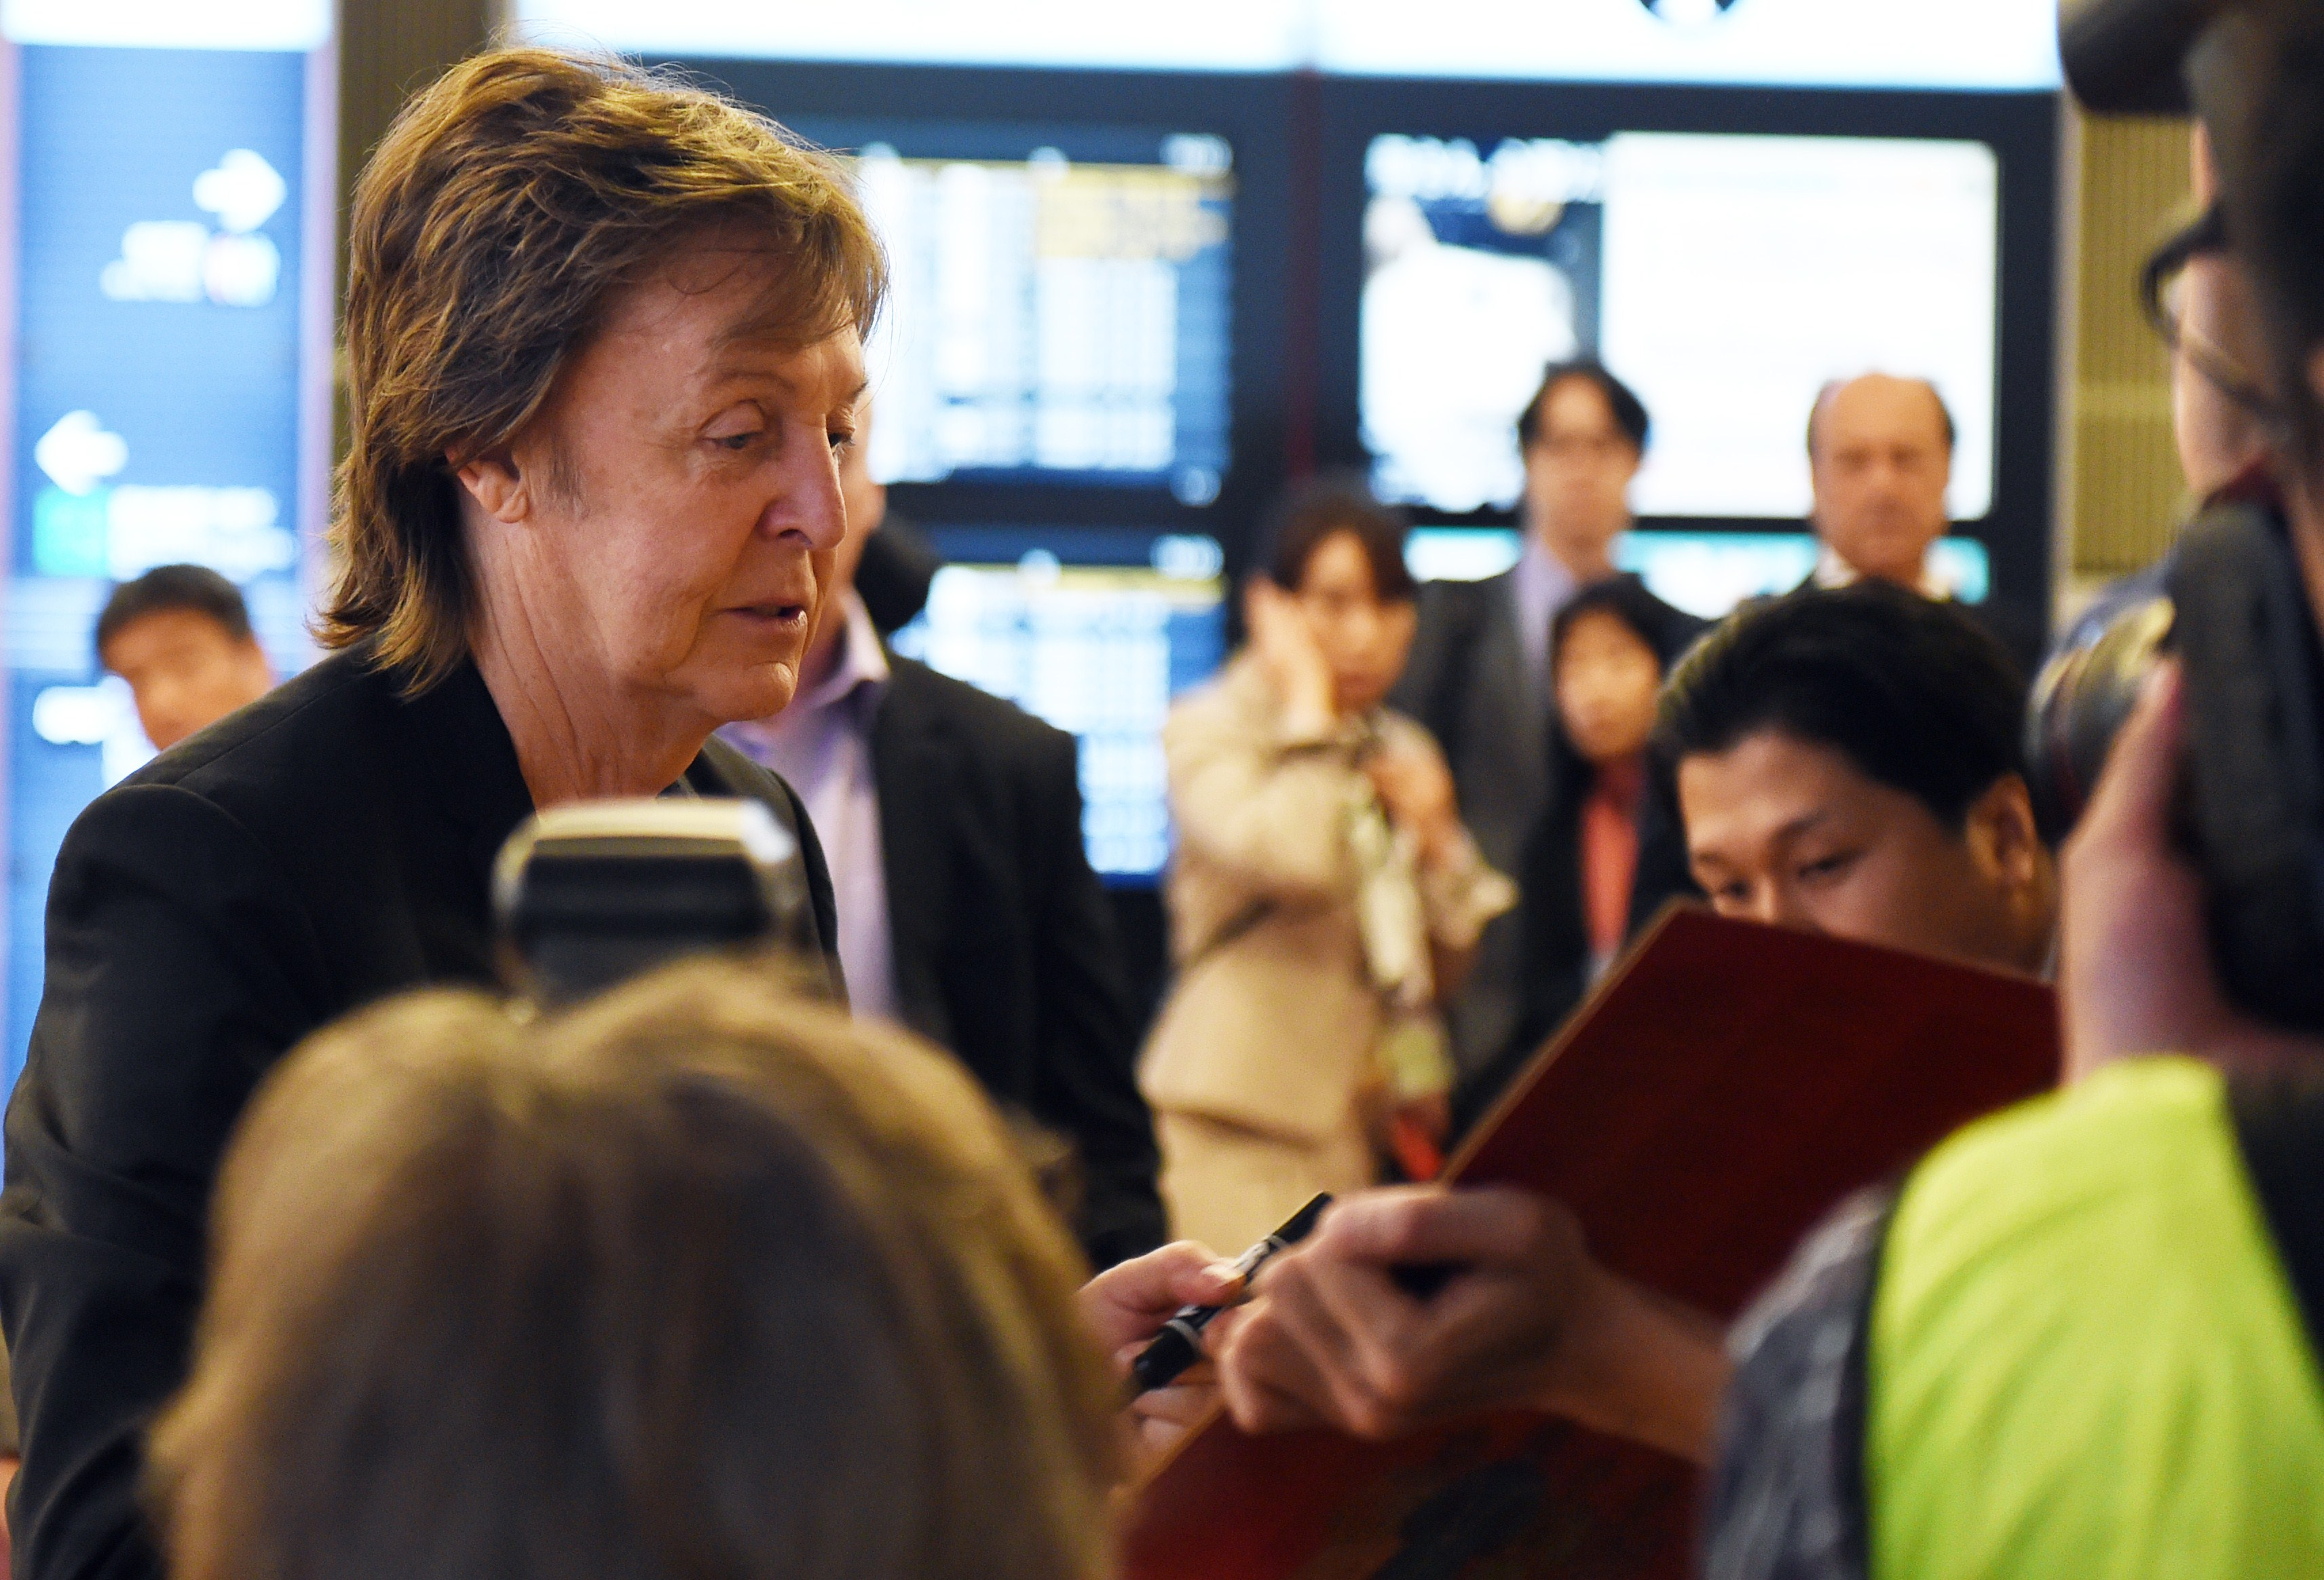 Paul McCartney (L) signs his autograph upon his arrival at the Haneda airport in Tokyo on May 15, 2014.